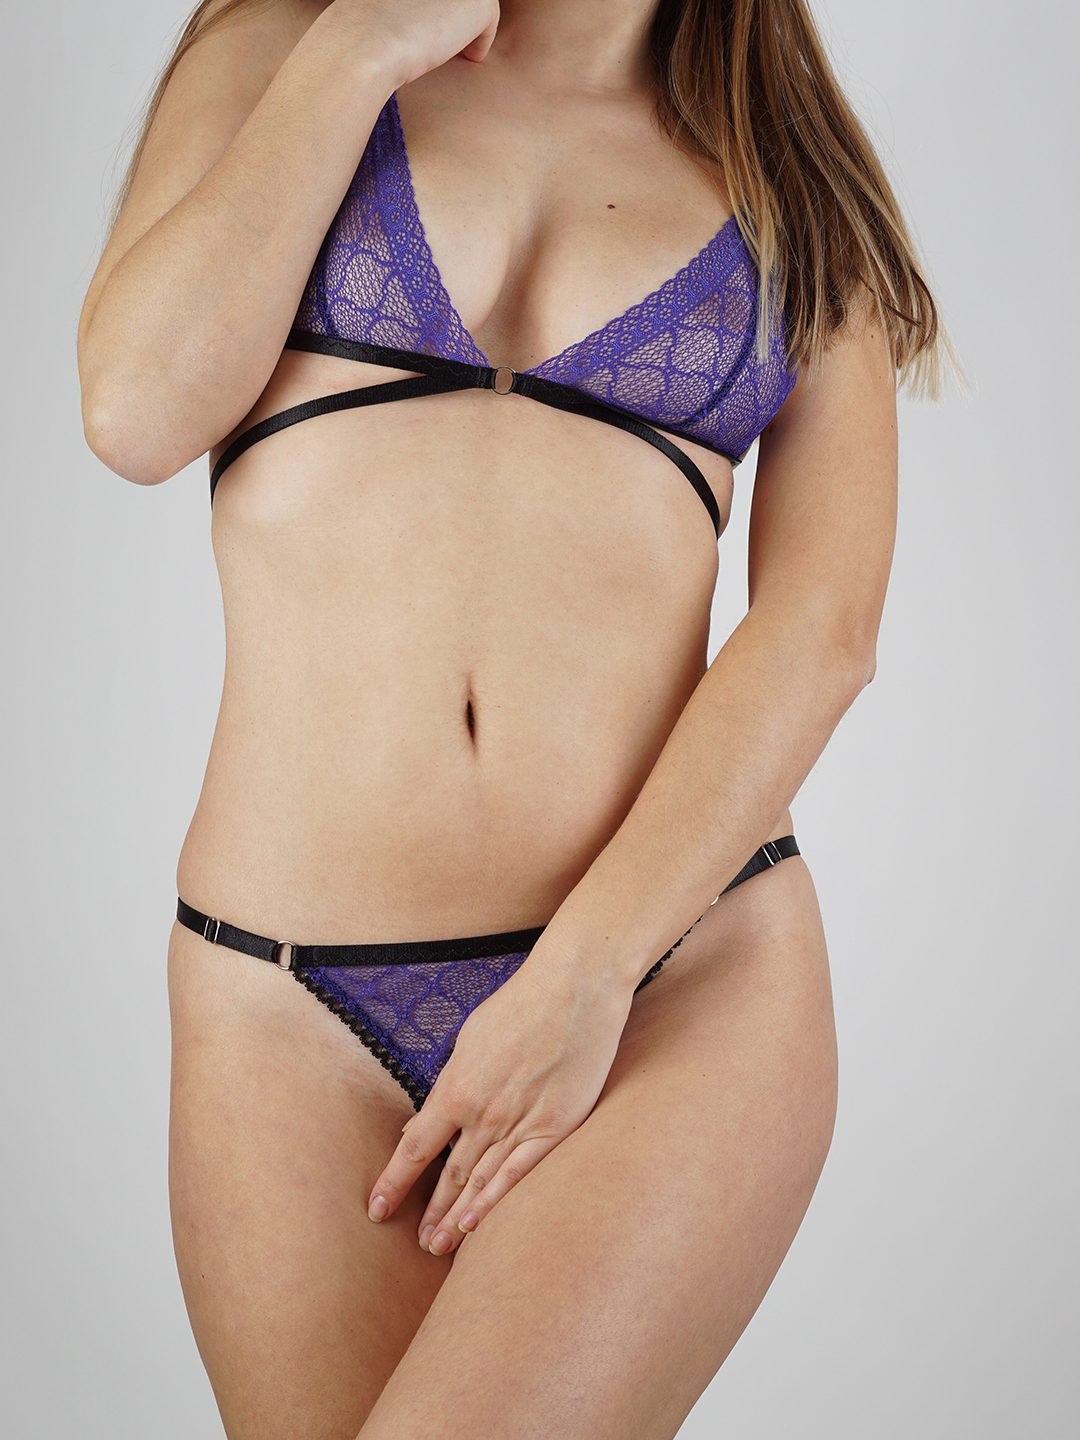 Purple lingerie set with strappy bralette and ouvert panties - BlackWings Lingerie